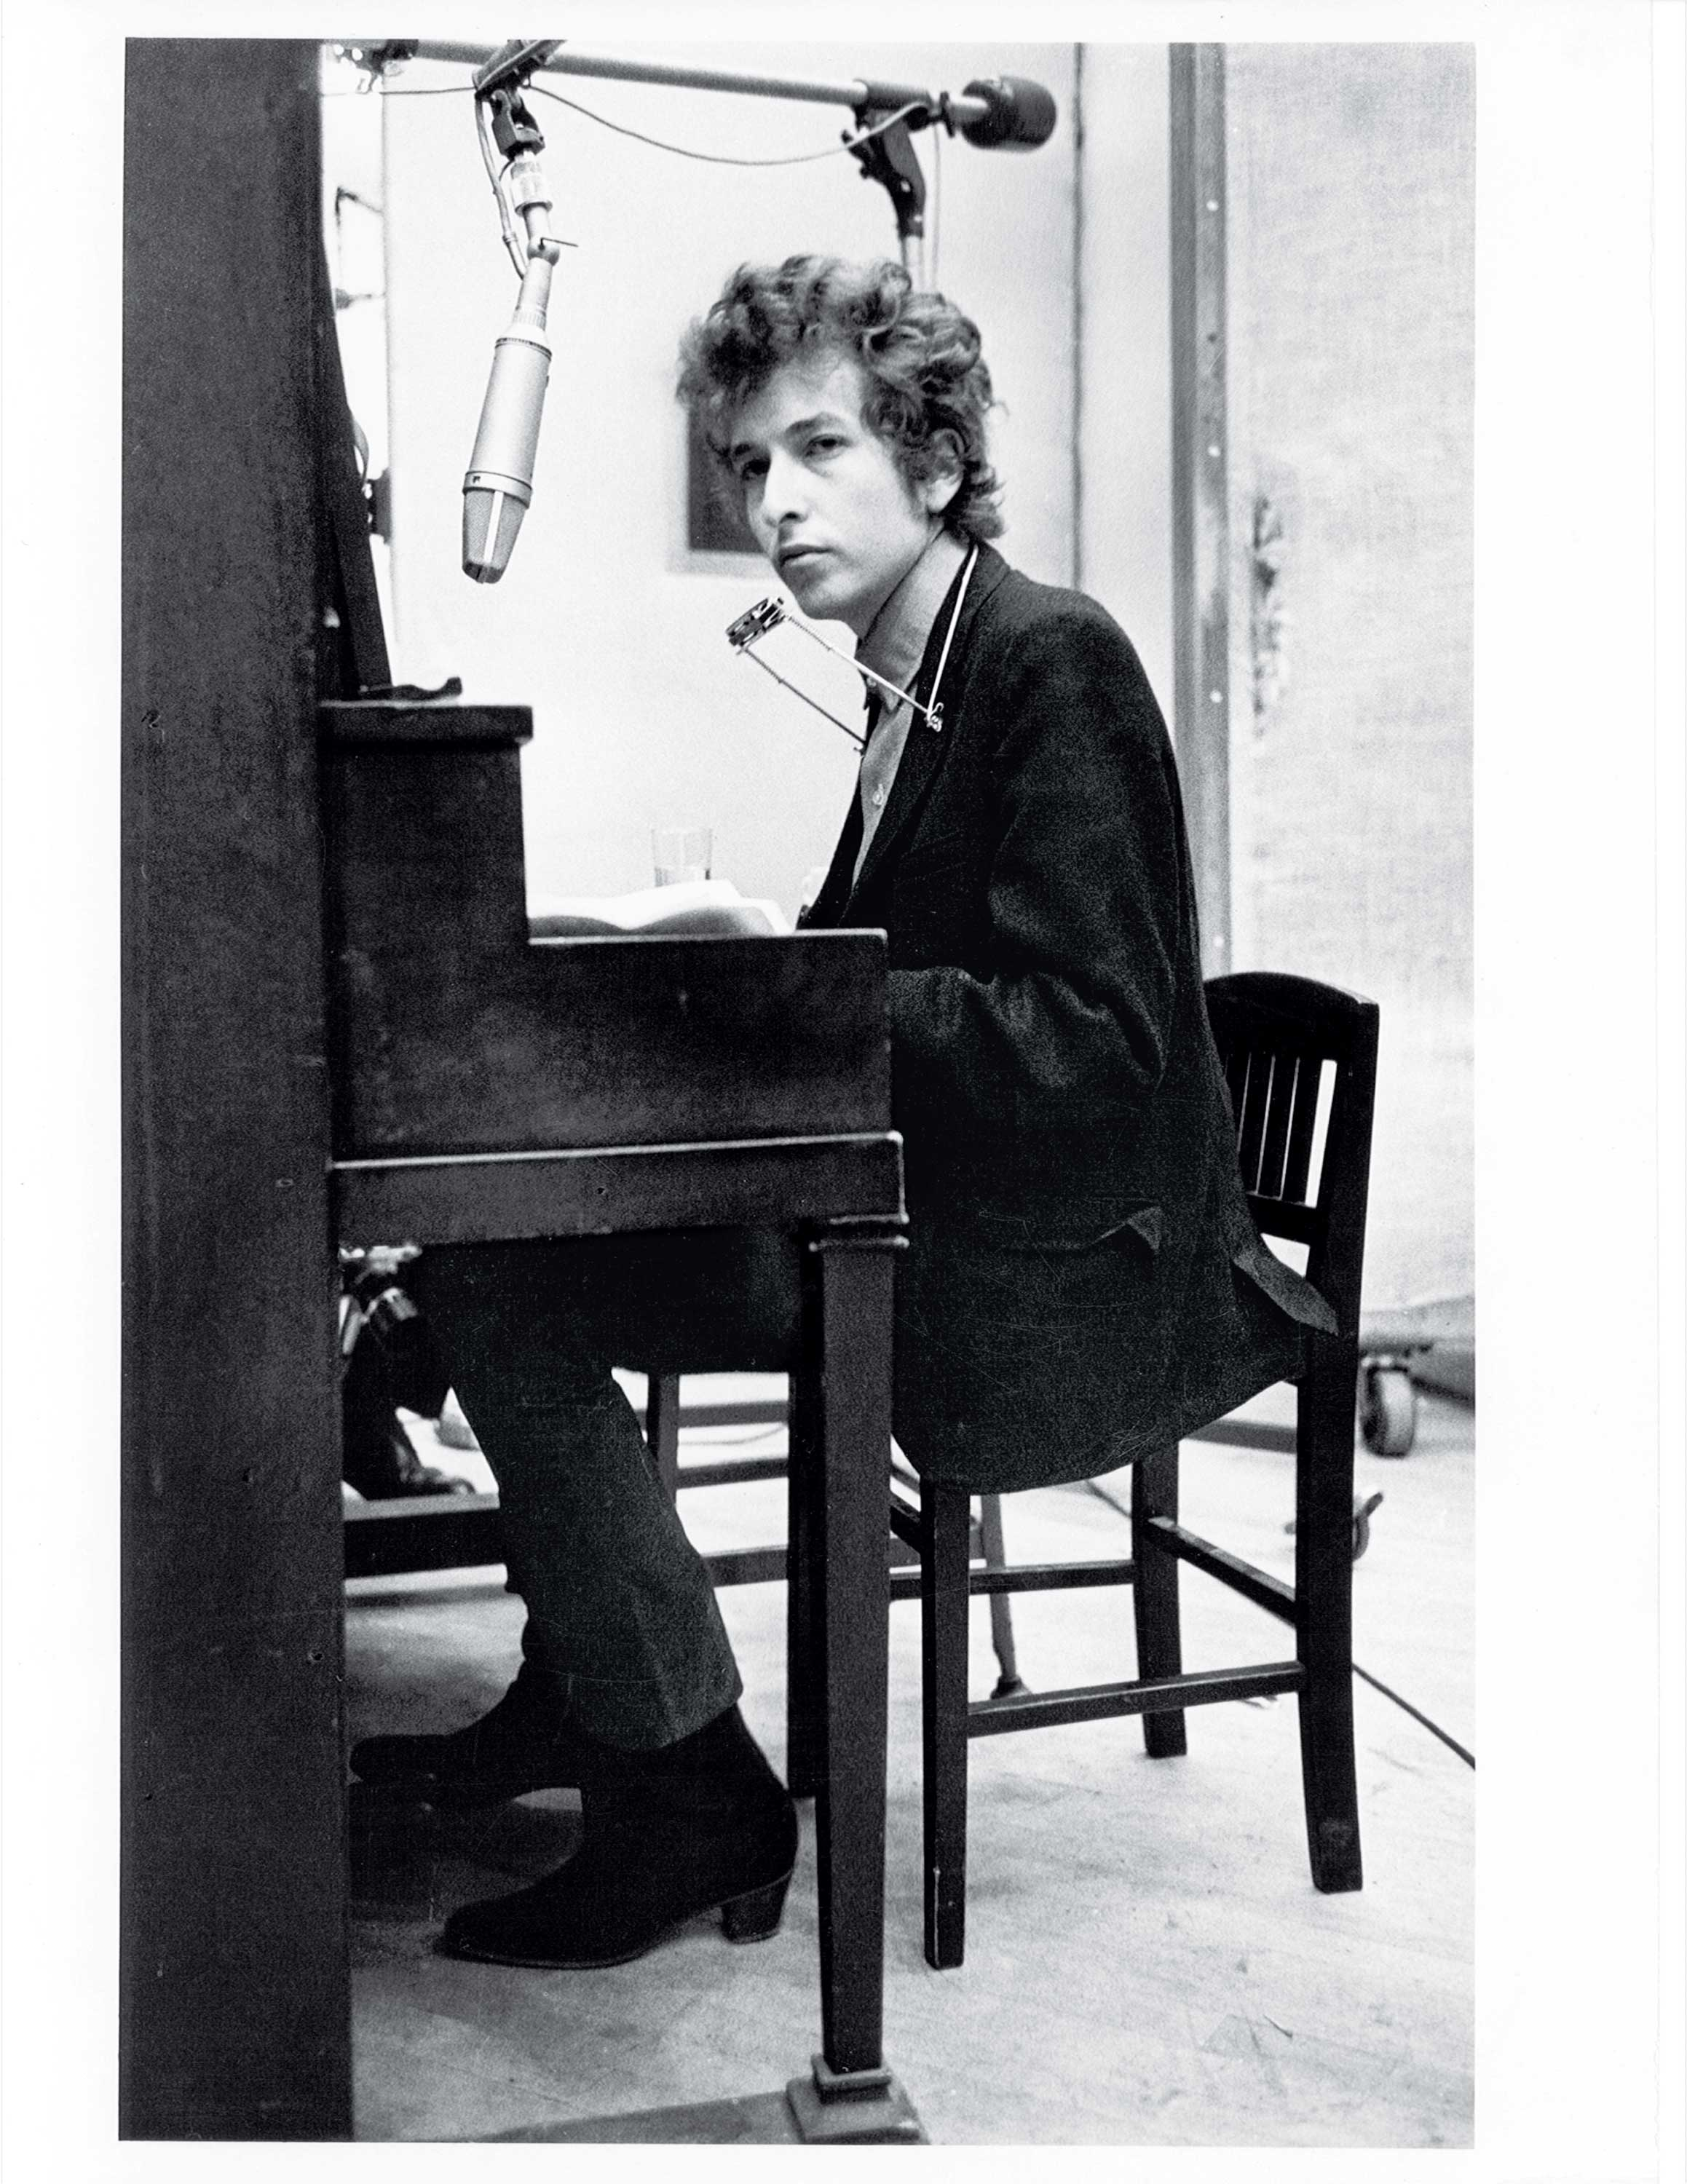 Dylan recording Highway 61 Revisited in New York City, 1965